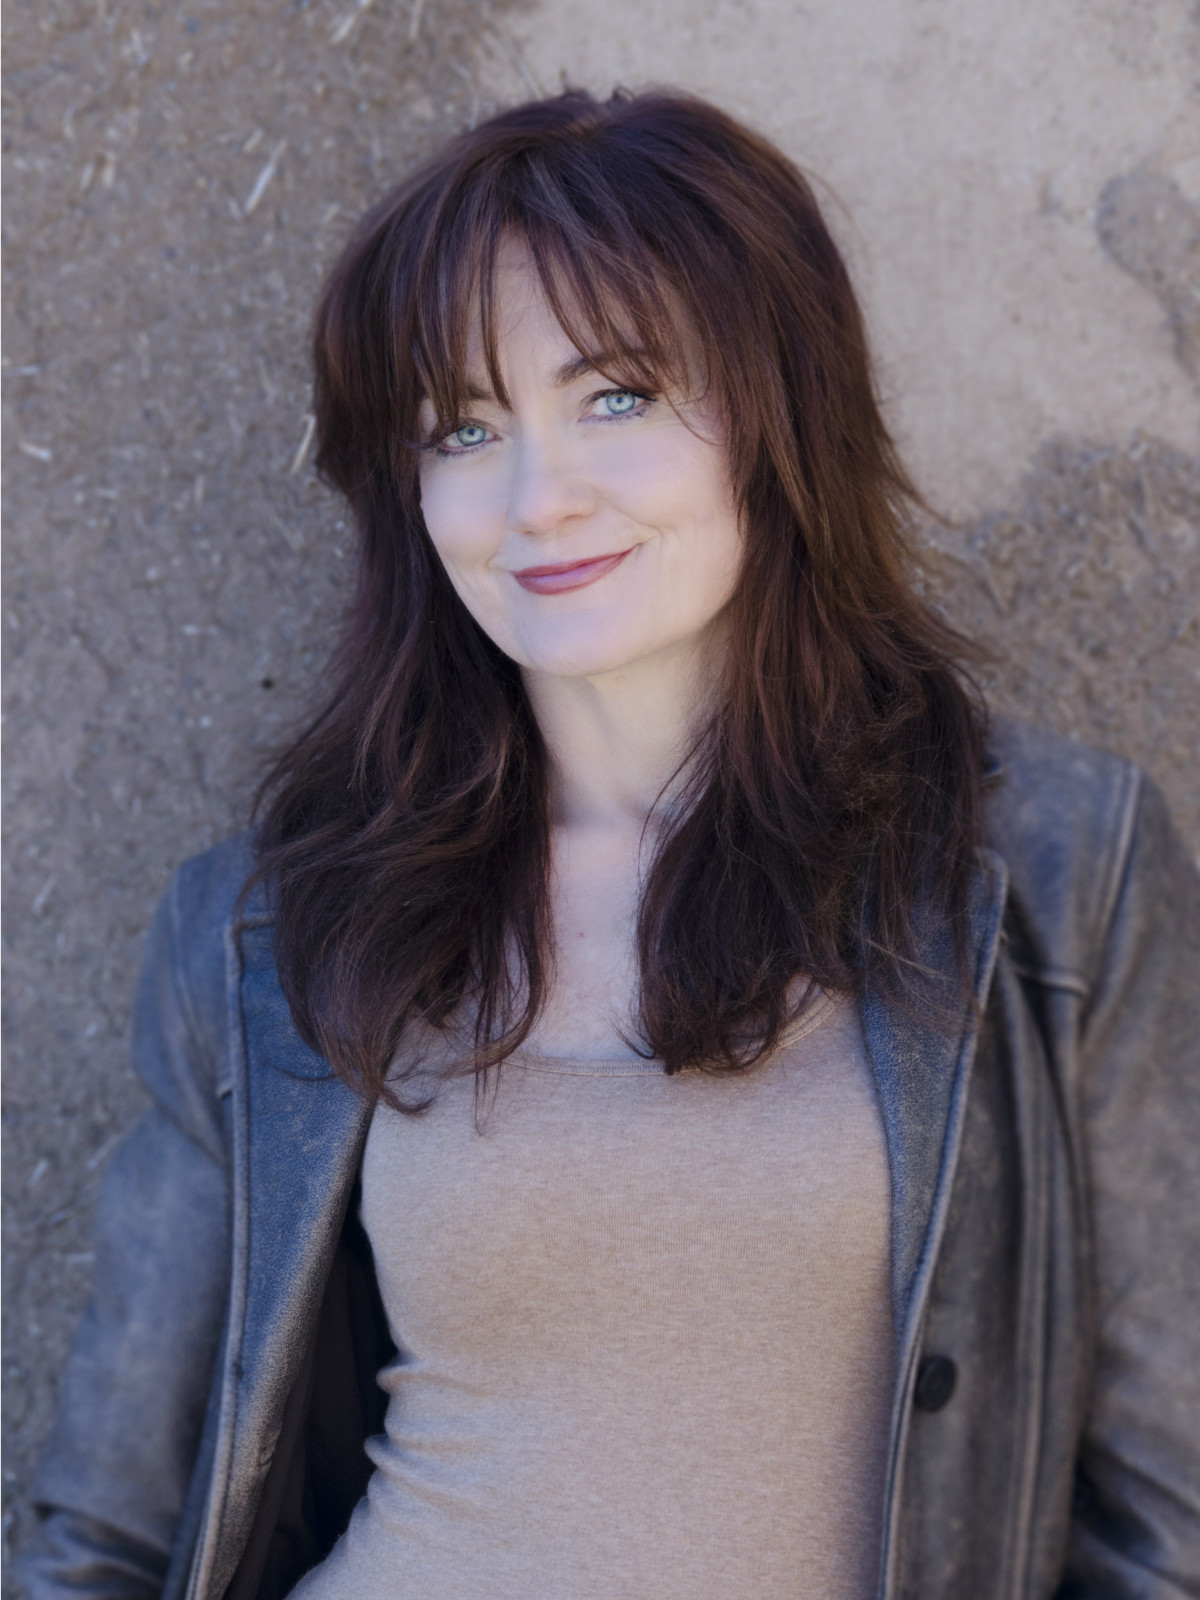 Actor Morgana Shaw